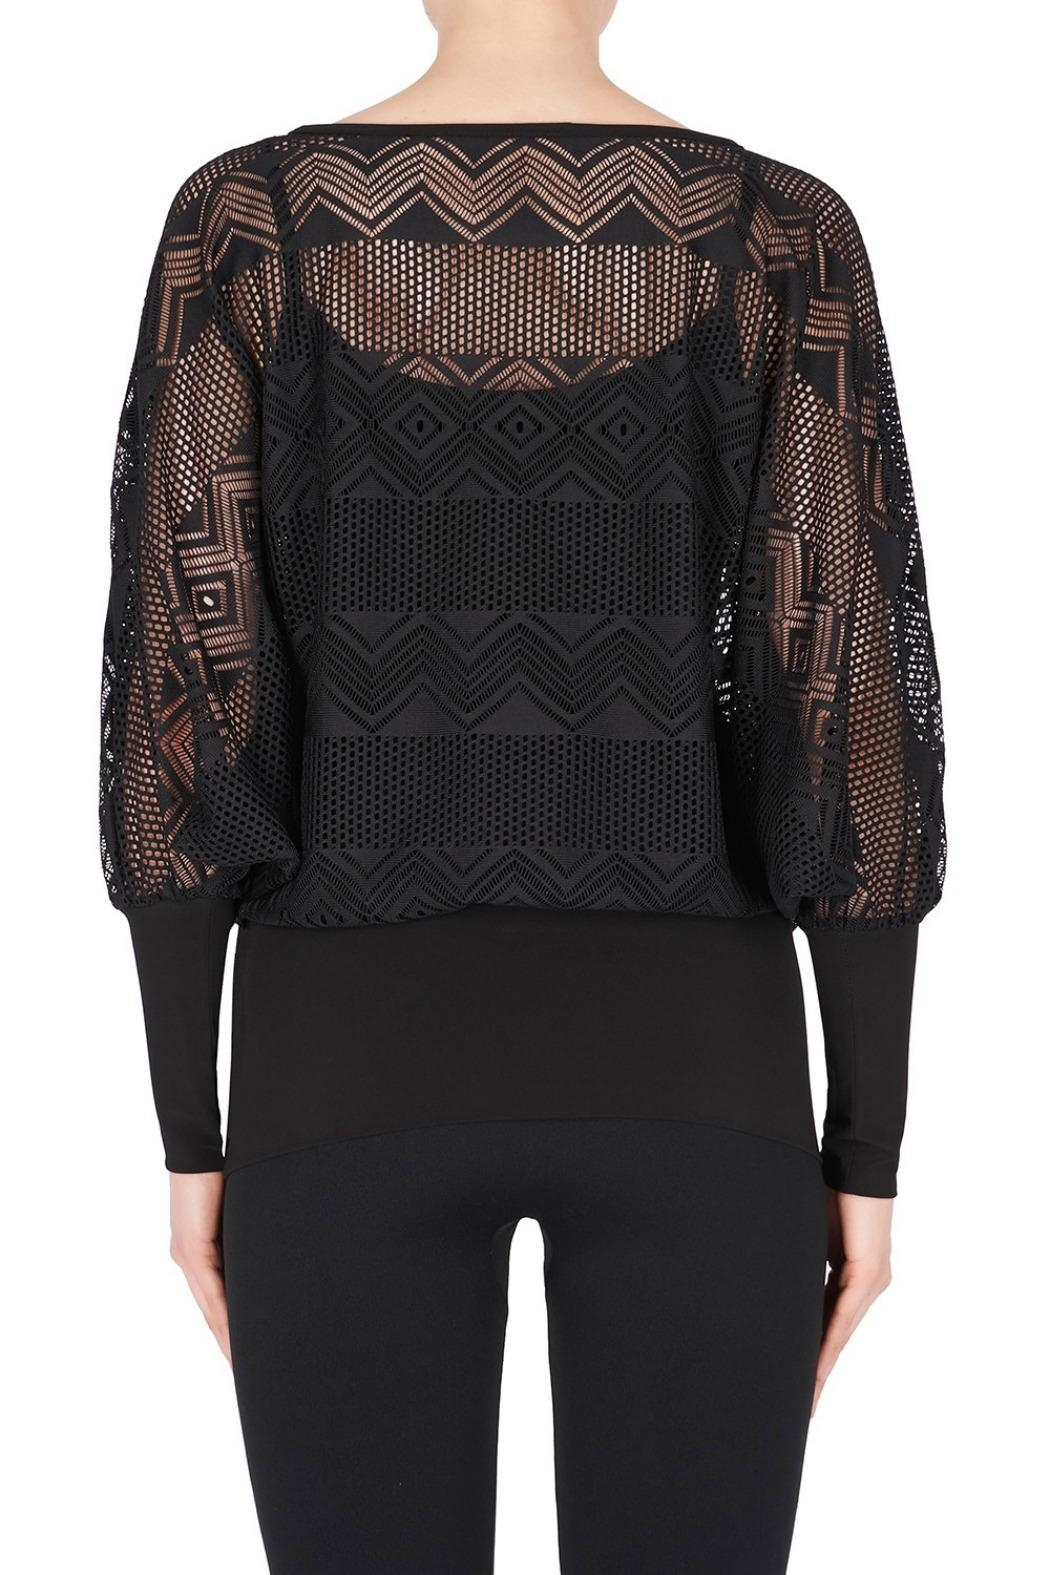 Joseph Ribkoff Long Sleeve Top - Side Cropped Image